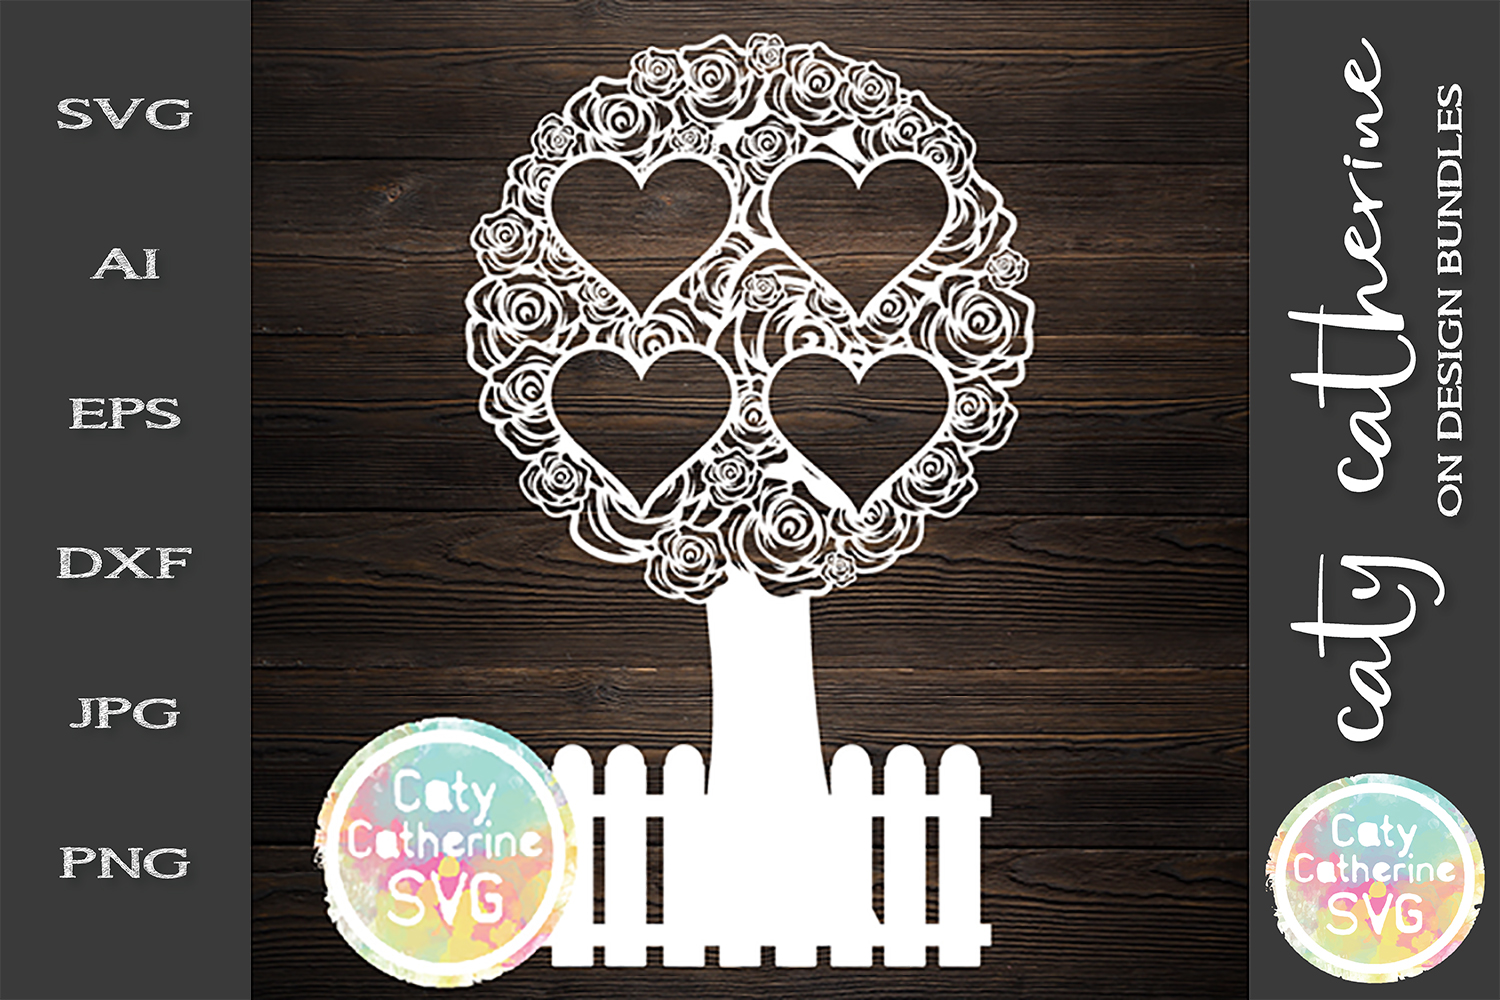 Rose Family Tree With Fence Four Hearts SVG Cut File example image 1